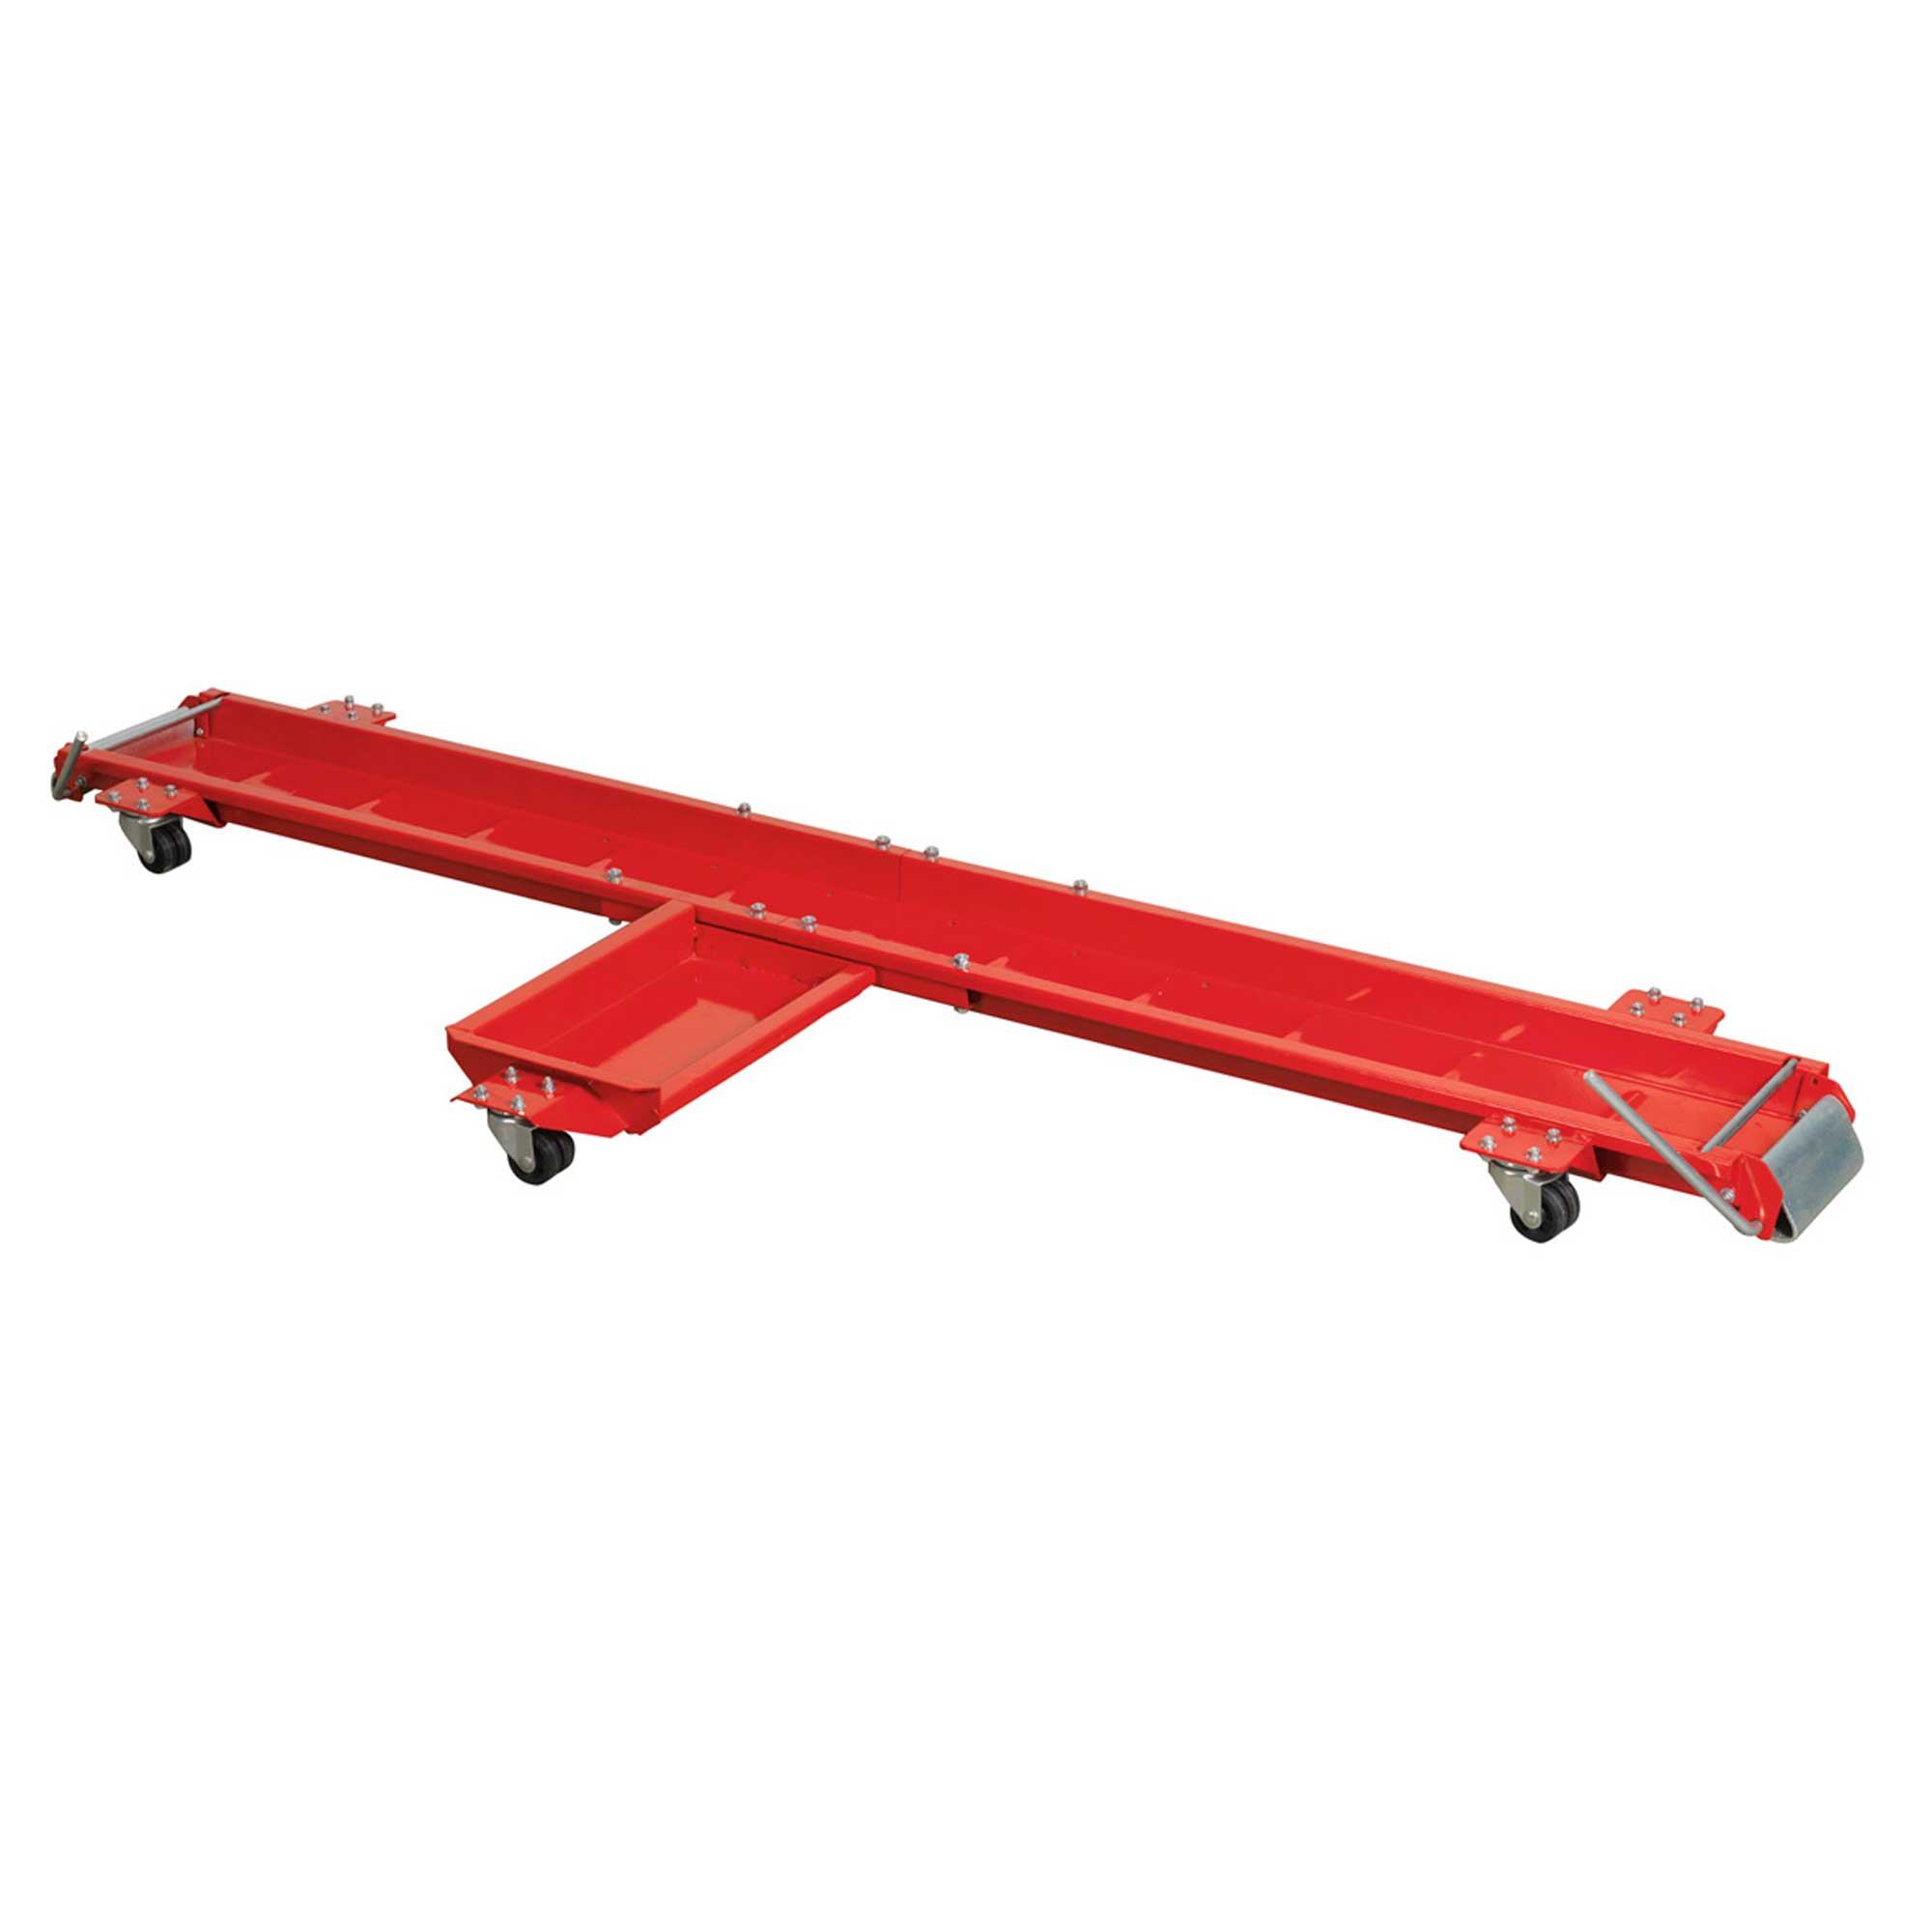 Sealey Motorcycle Side Stand Type Bike 565kg Holding Capacity Dolly MS063